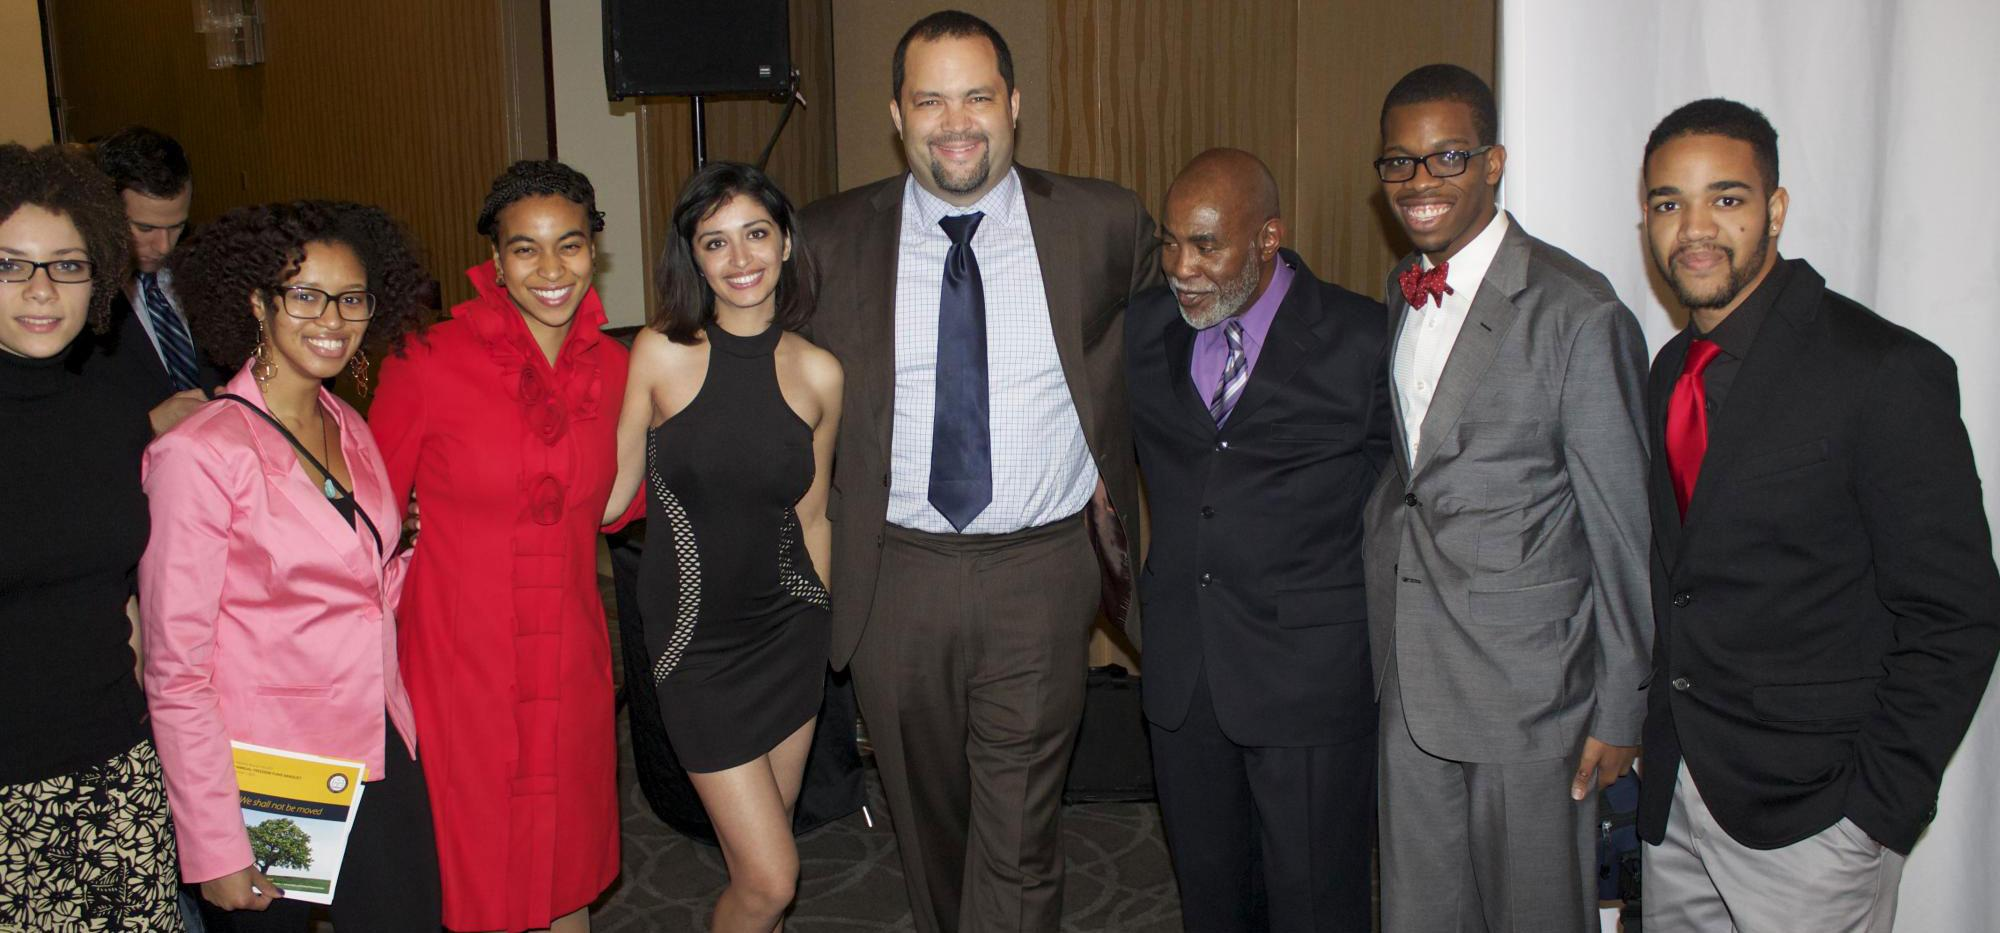 Brigid Carmichael, Alexis Hudson, Brittney Silver, Nilob Nahib, Benjamin Todd Jealous (the president of NAACP ), Arnold Woods, Gregory Hinton, Jacob Washington.